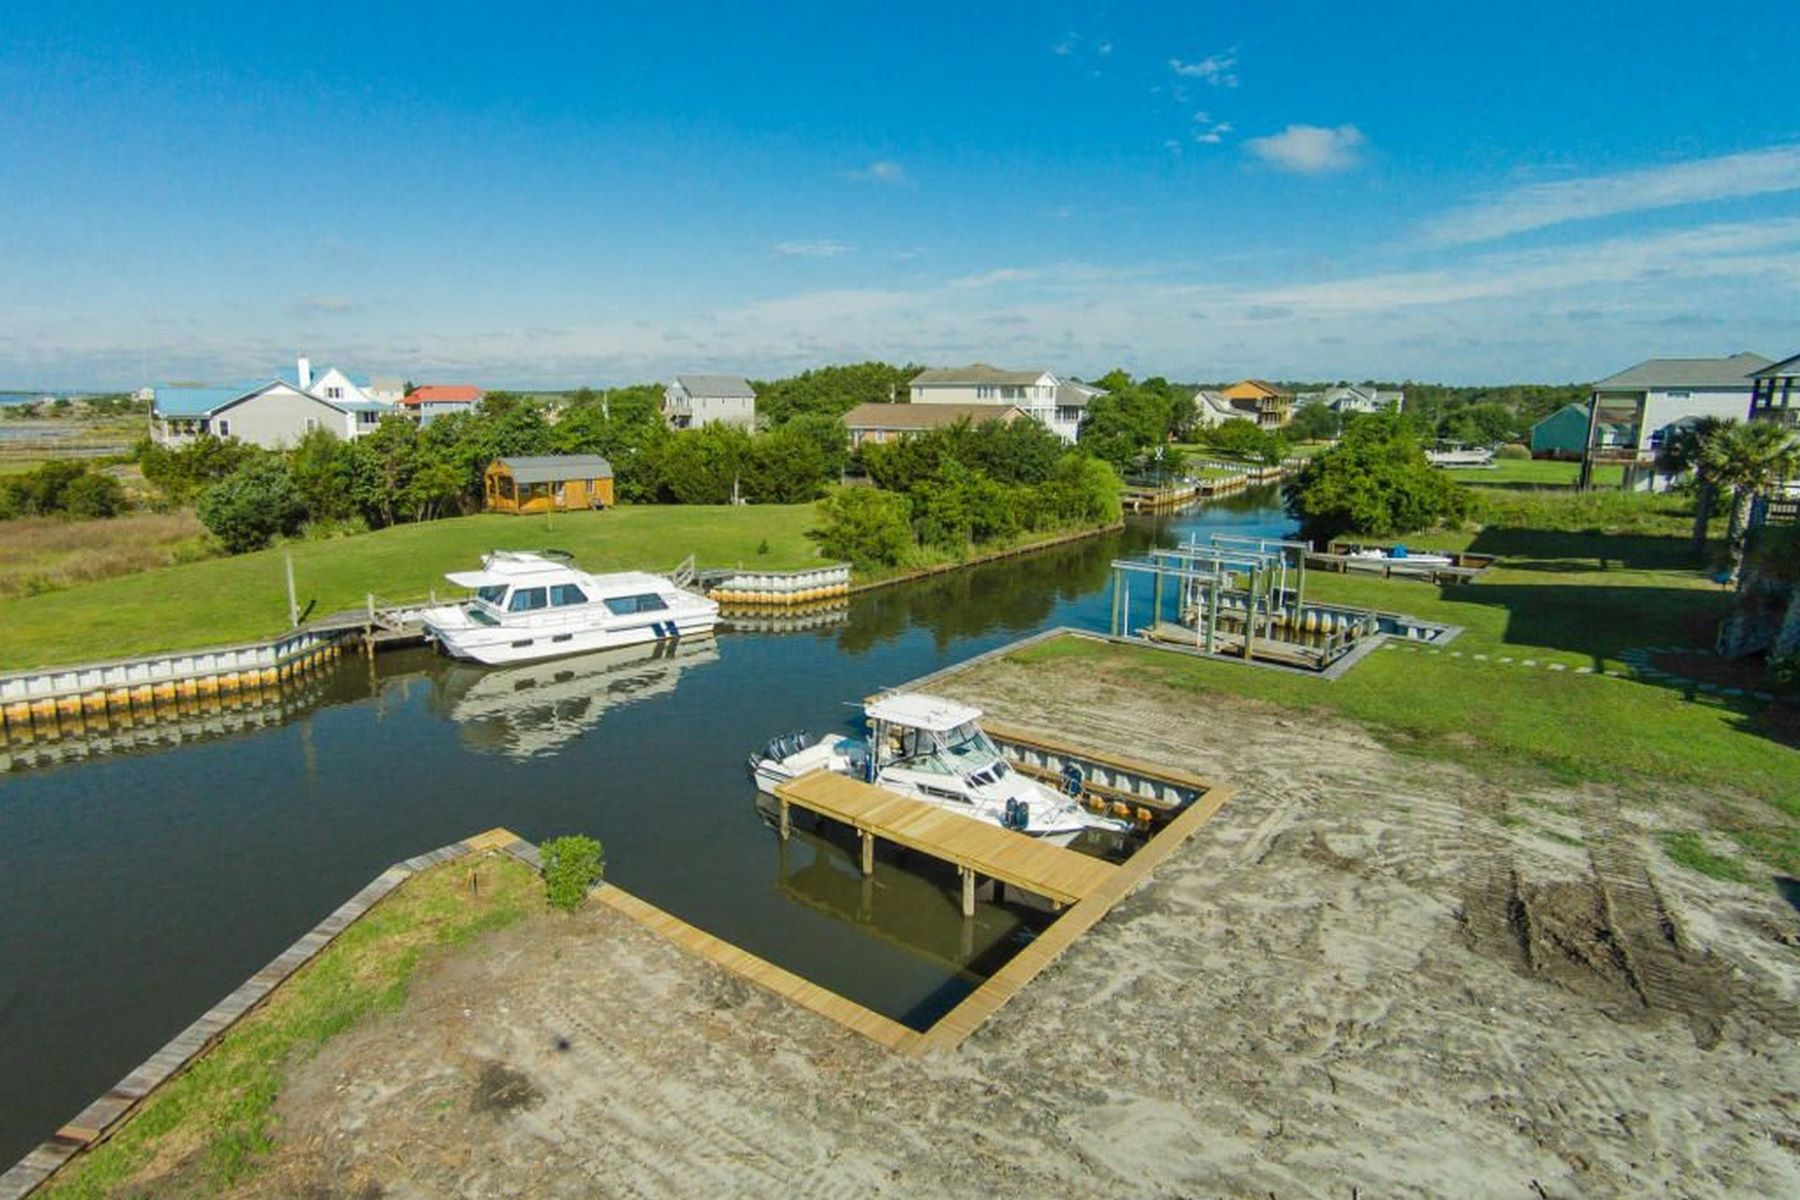 Terreno por un Venta en Dual Water Views 206 Singleton Street 1 Sneads Ferry, Carolina Del Norte 28460 Estados Unidos